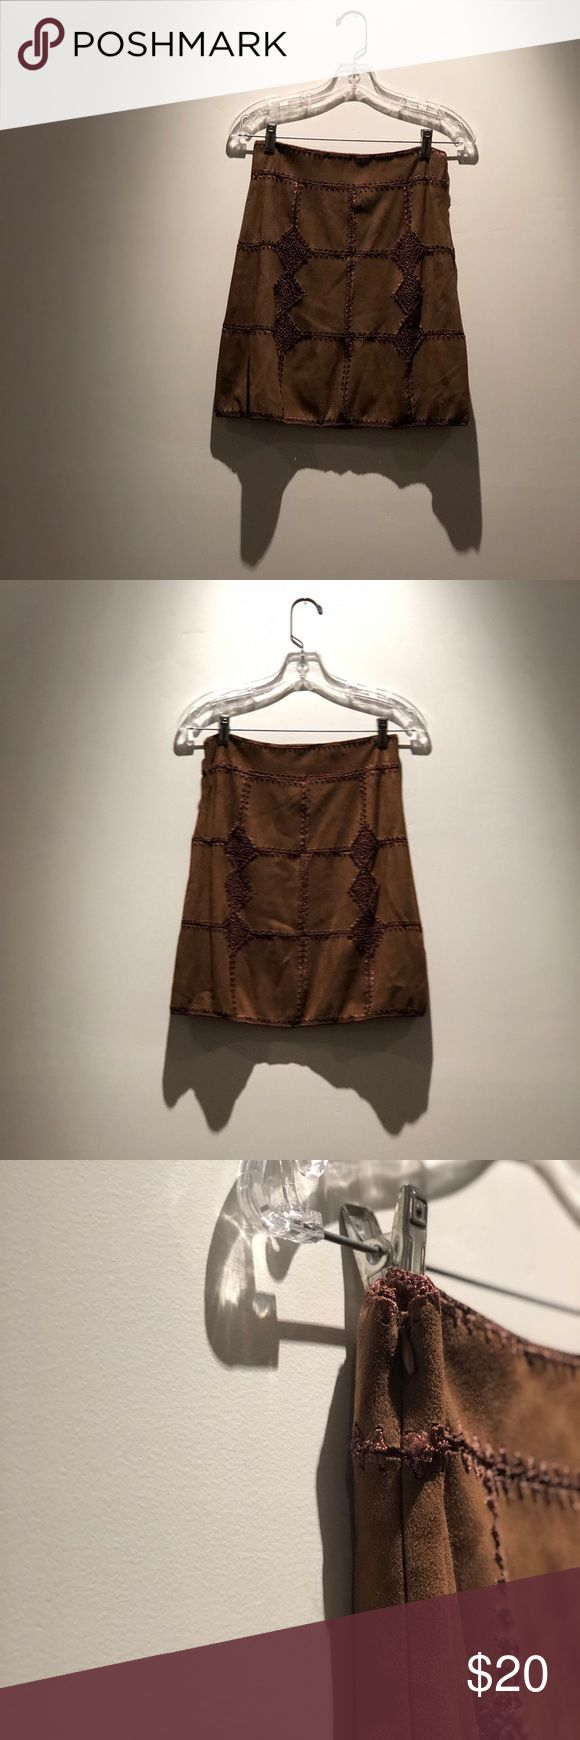 👜Hailey Baldwin inspired Zara brown skirt Zara woman brown embroidered skirt -Hailey Baldwin inspired  -velvet textile  -small seam separation as shown -never worn -all orders ship within 48 hours -all questions answered within 24 hours! Zara Skirts Mini